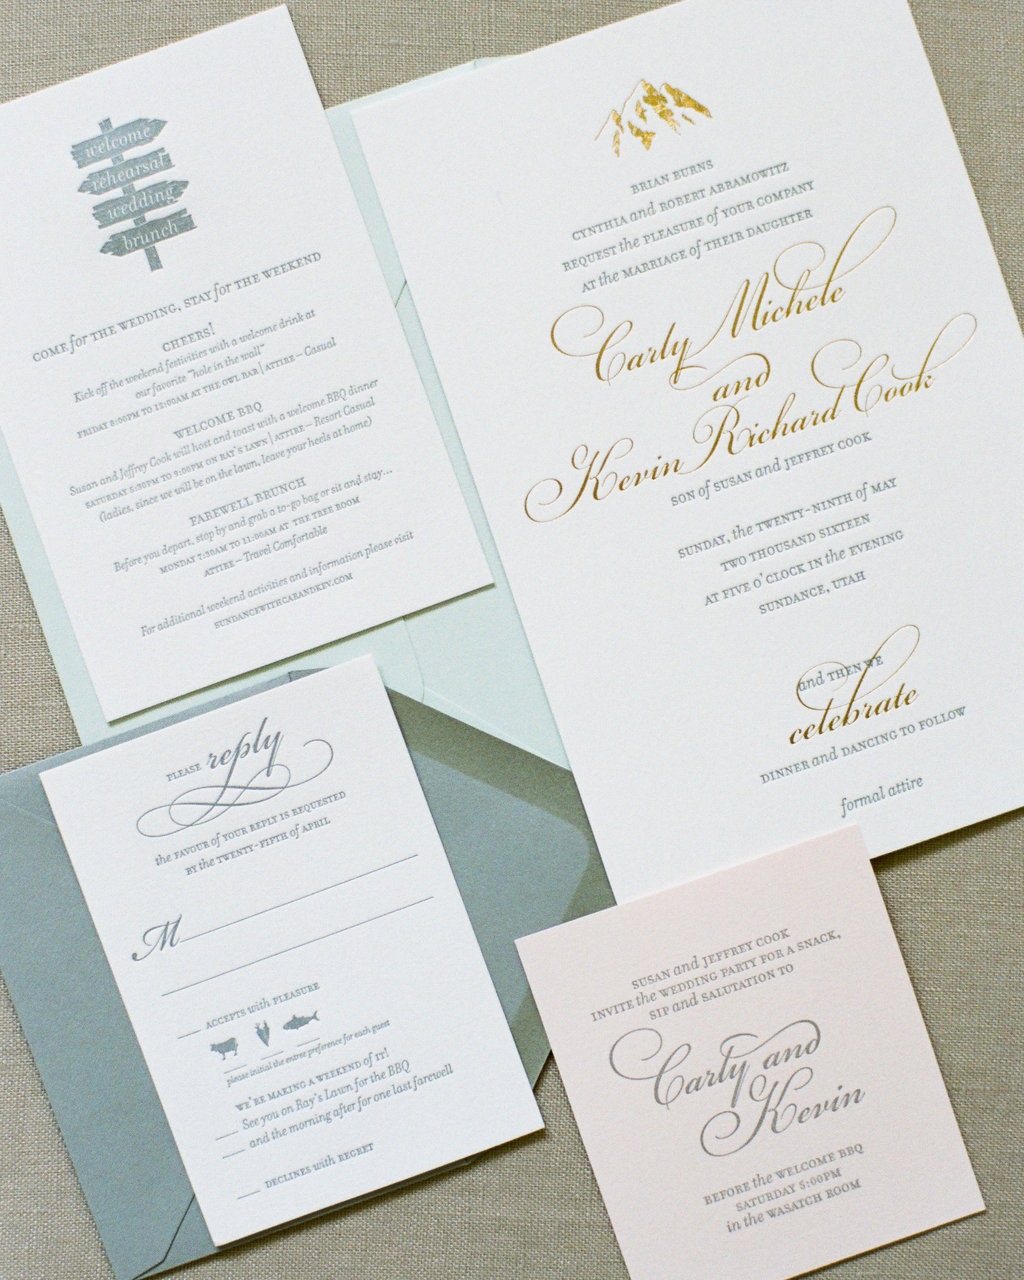 Buyer Beware: Hiring Wedding Vendors for Your Big Day   Wedding Planning To Dos   Michelle Leo Events   Utah Event Planner and Designer   Heather Nan Photography